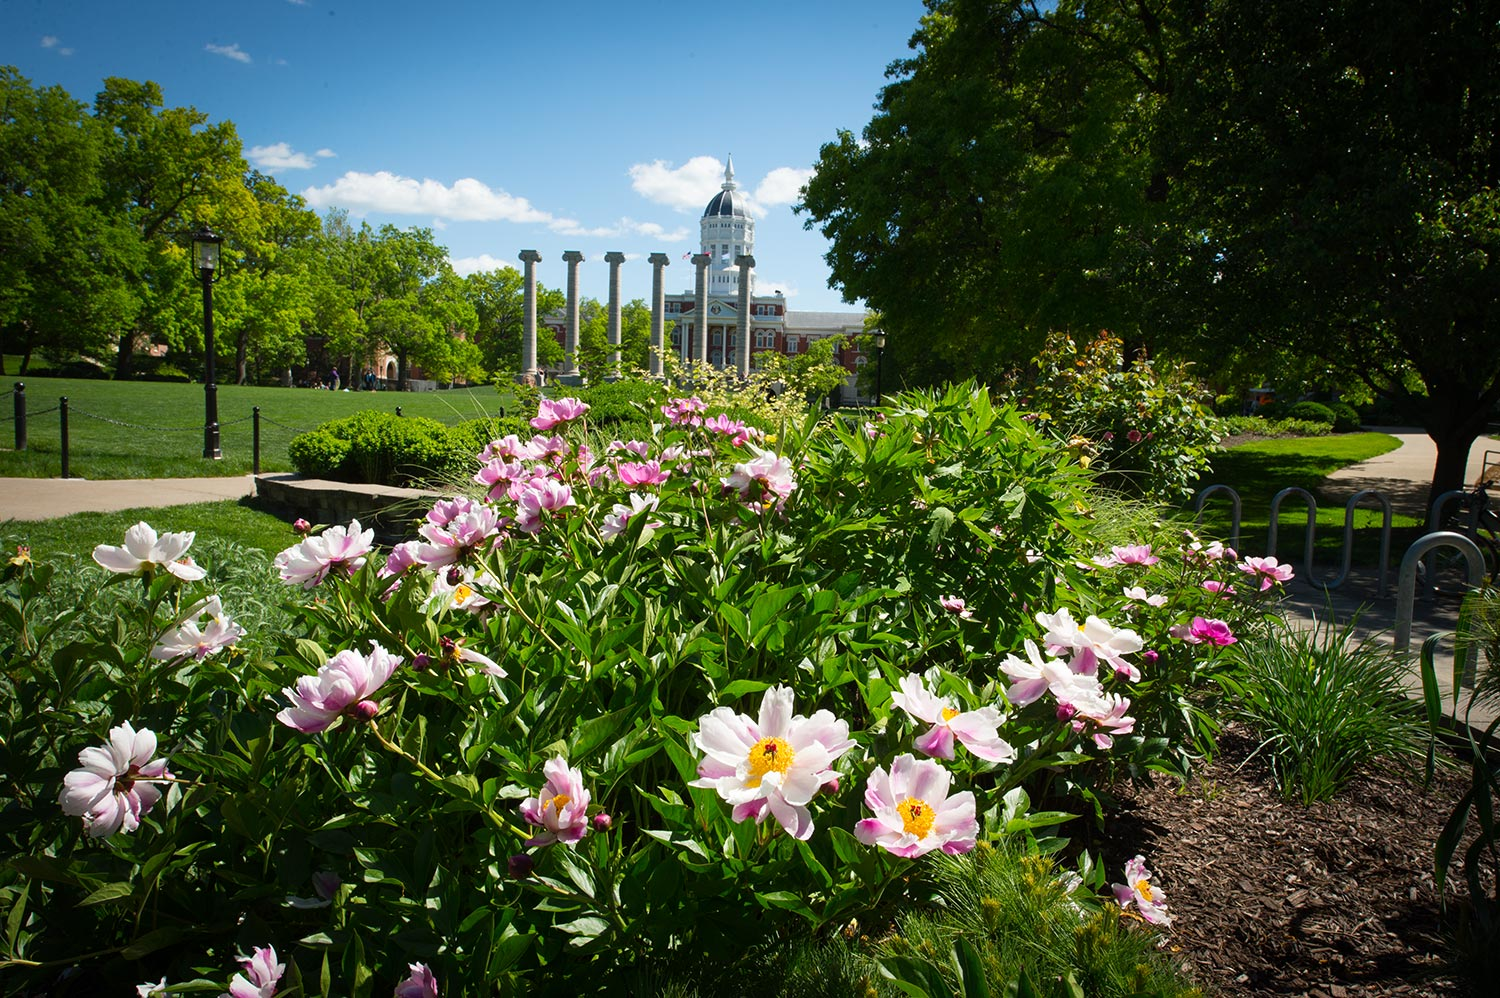 Flowers adorn campus on the northwest corner of The Quad.